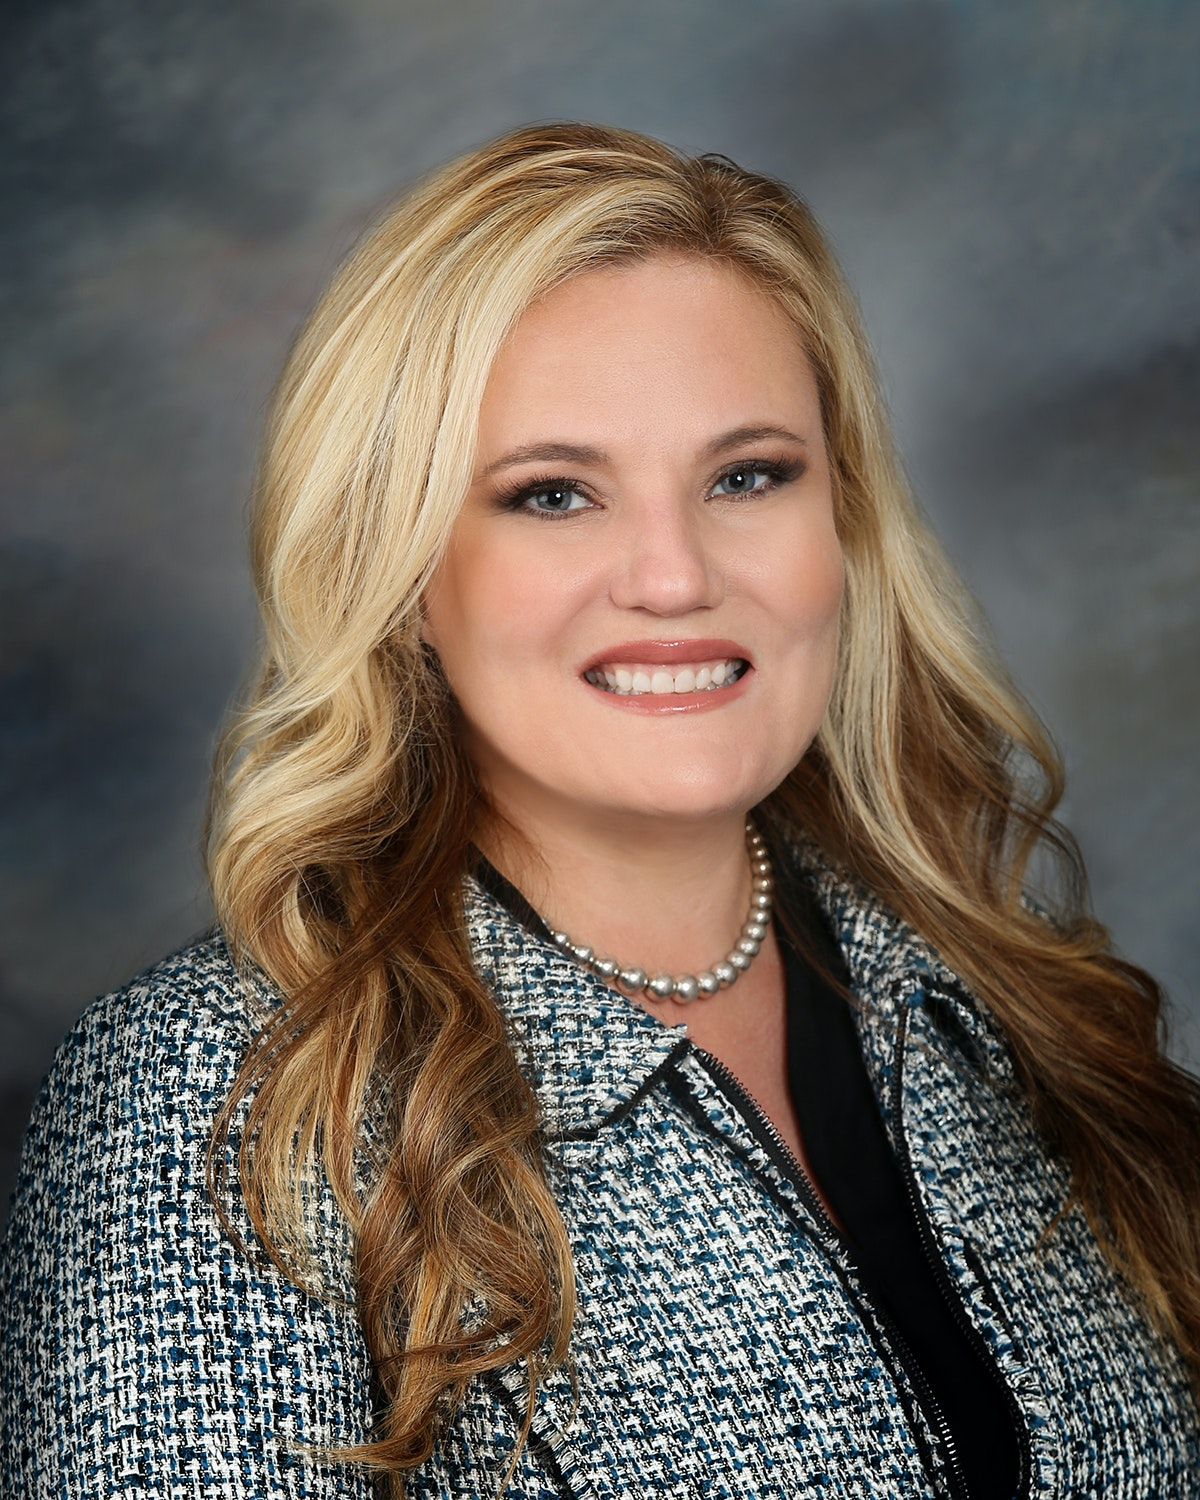 Erica Pezold, Trustee from Laguna Hills